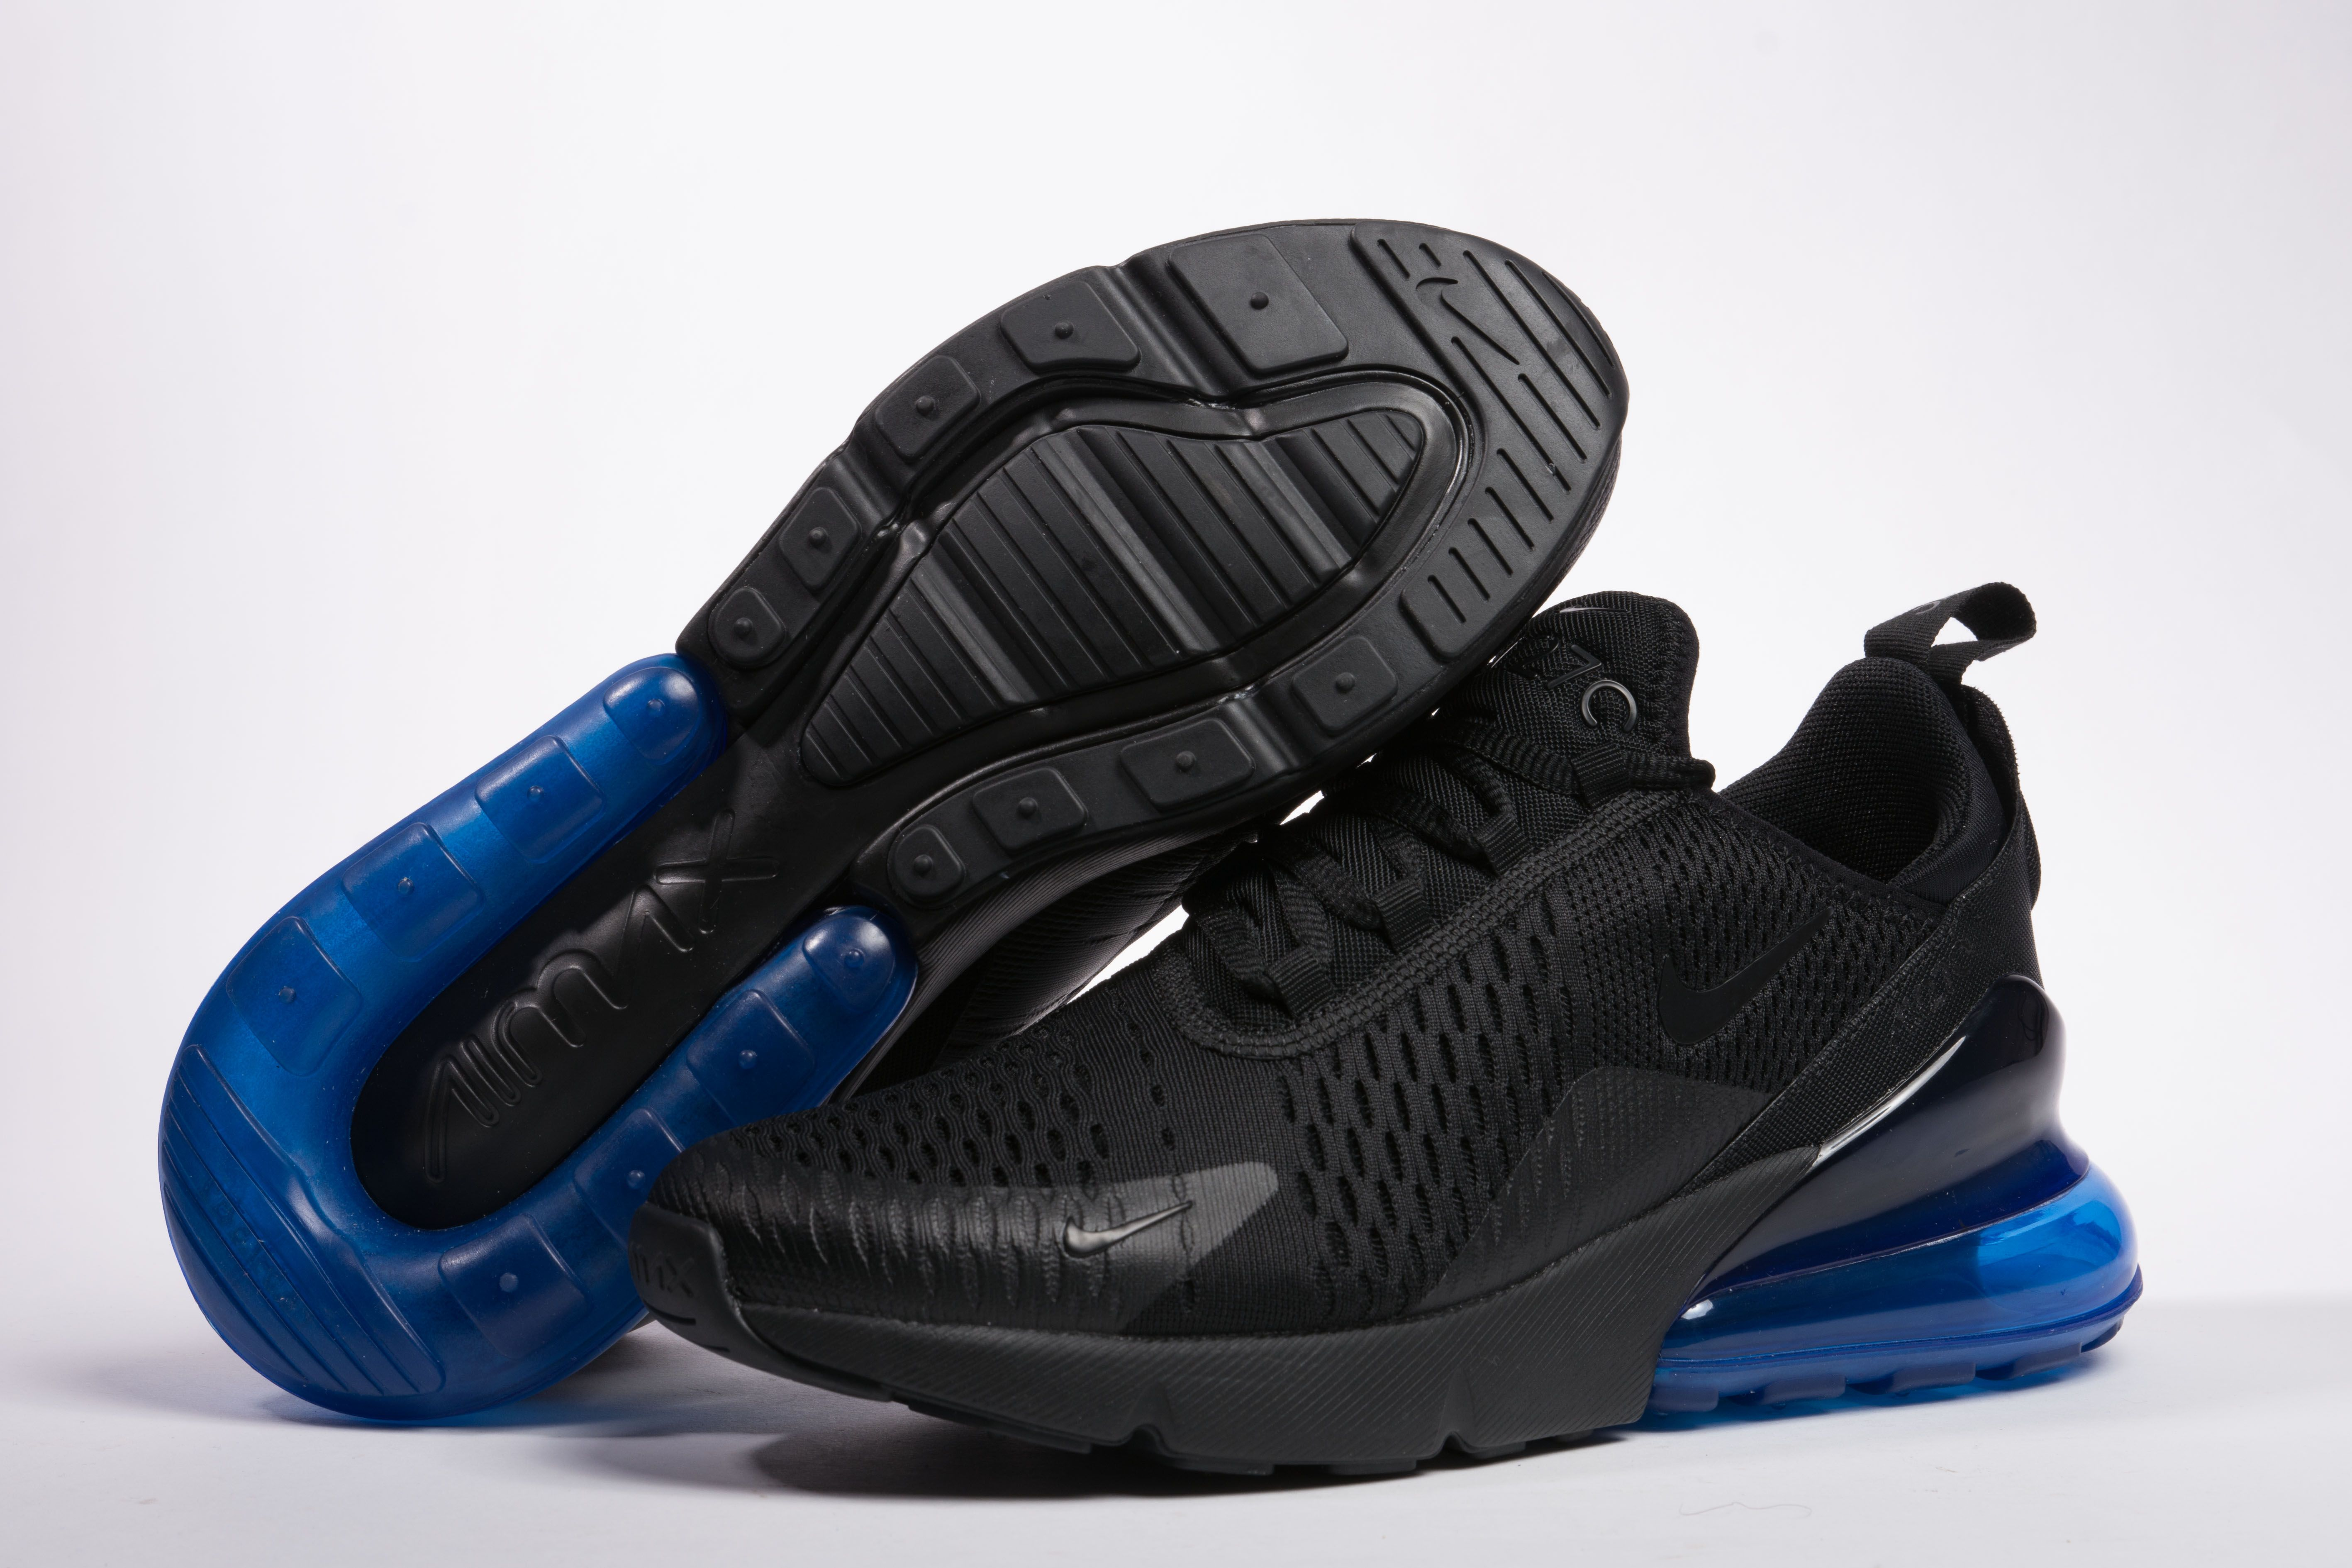 8728229b0b Nike Air Max 270 AH8050-009 black blue21 | Nike Air Max in 2019 ...